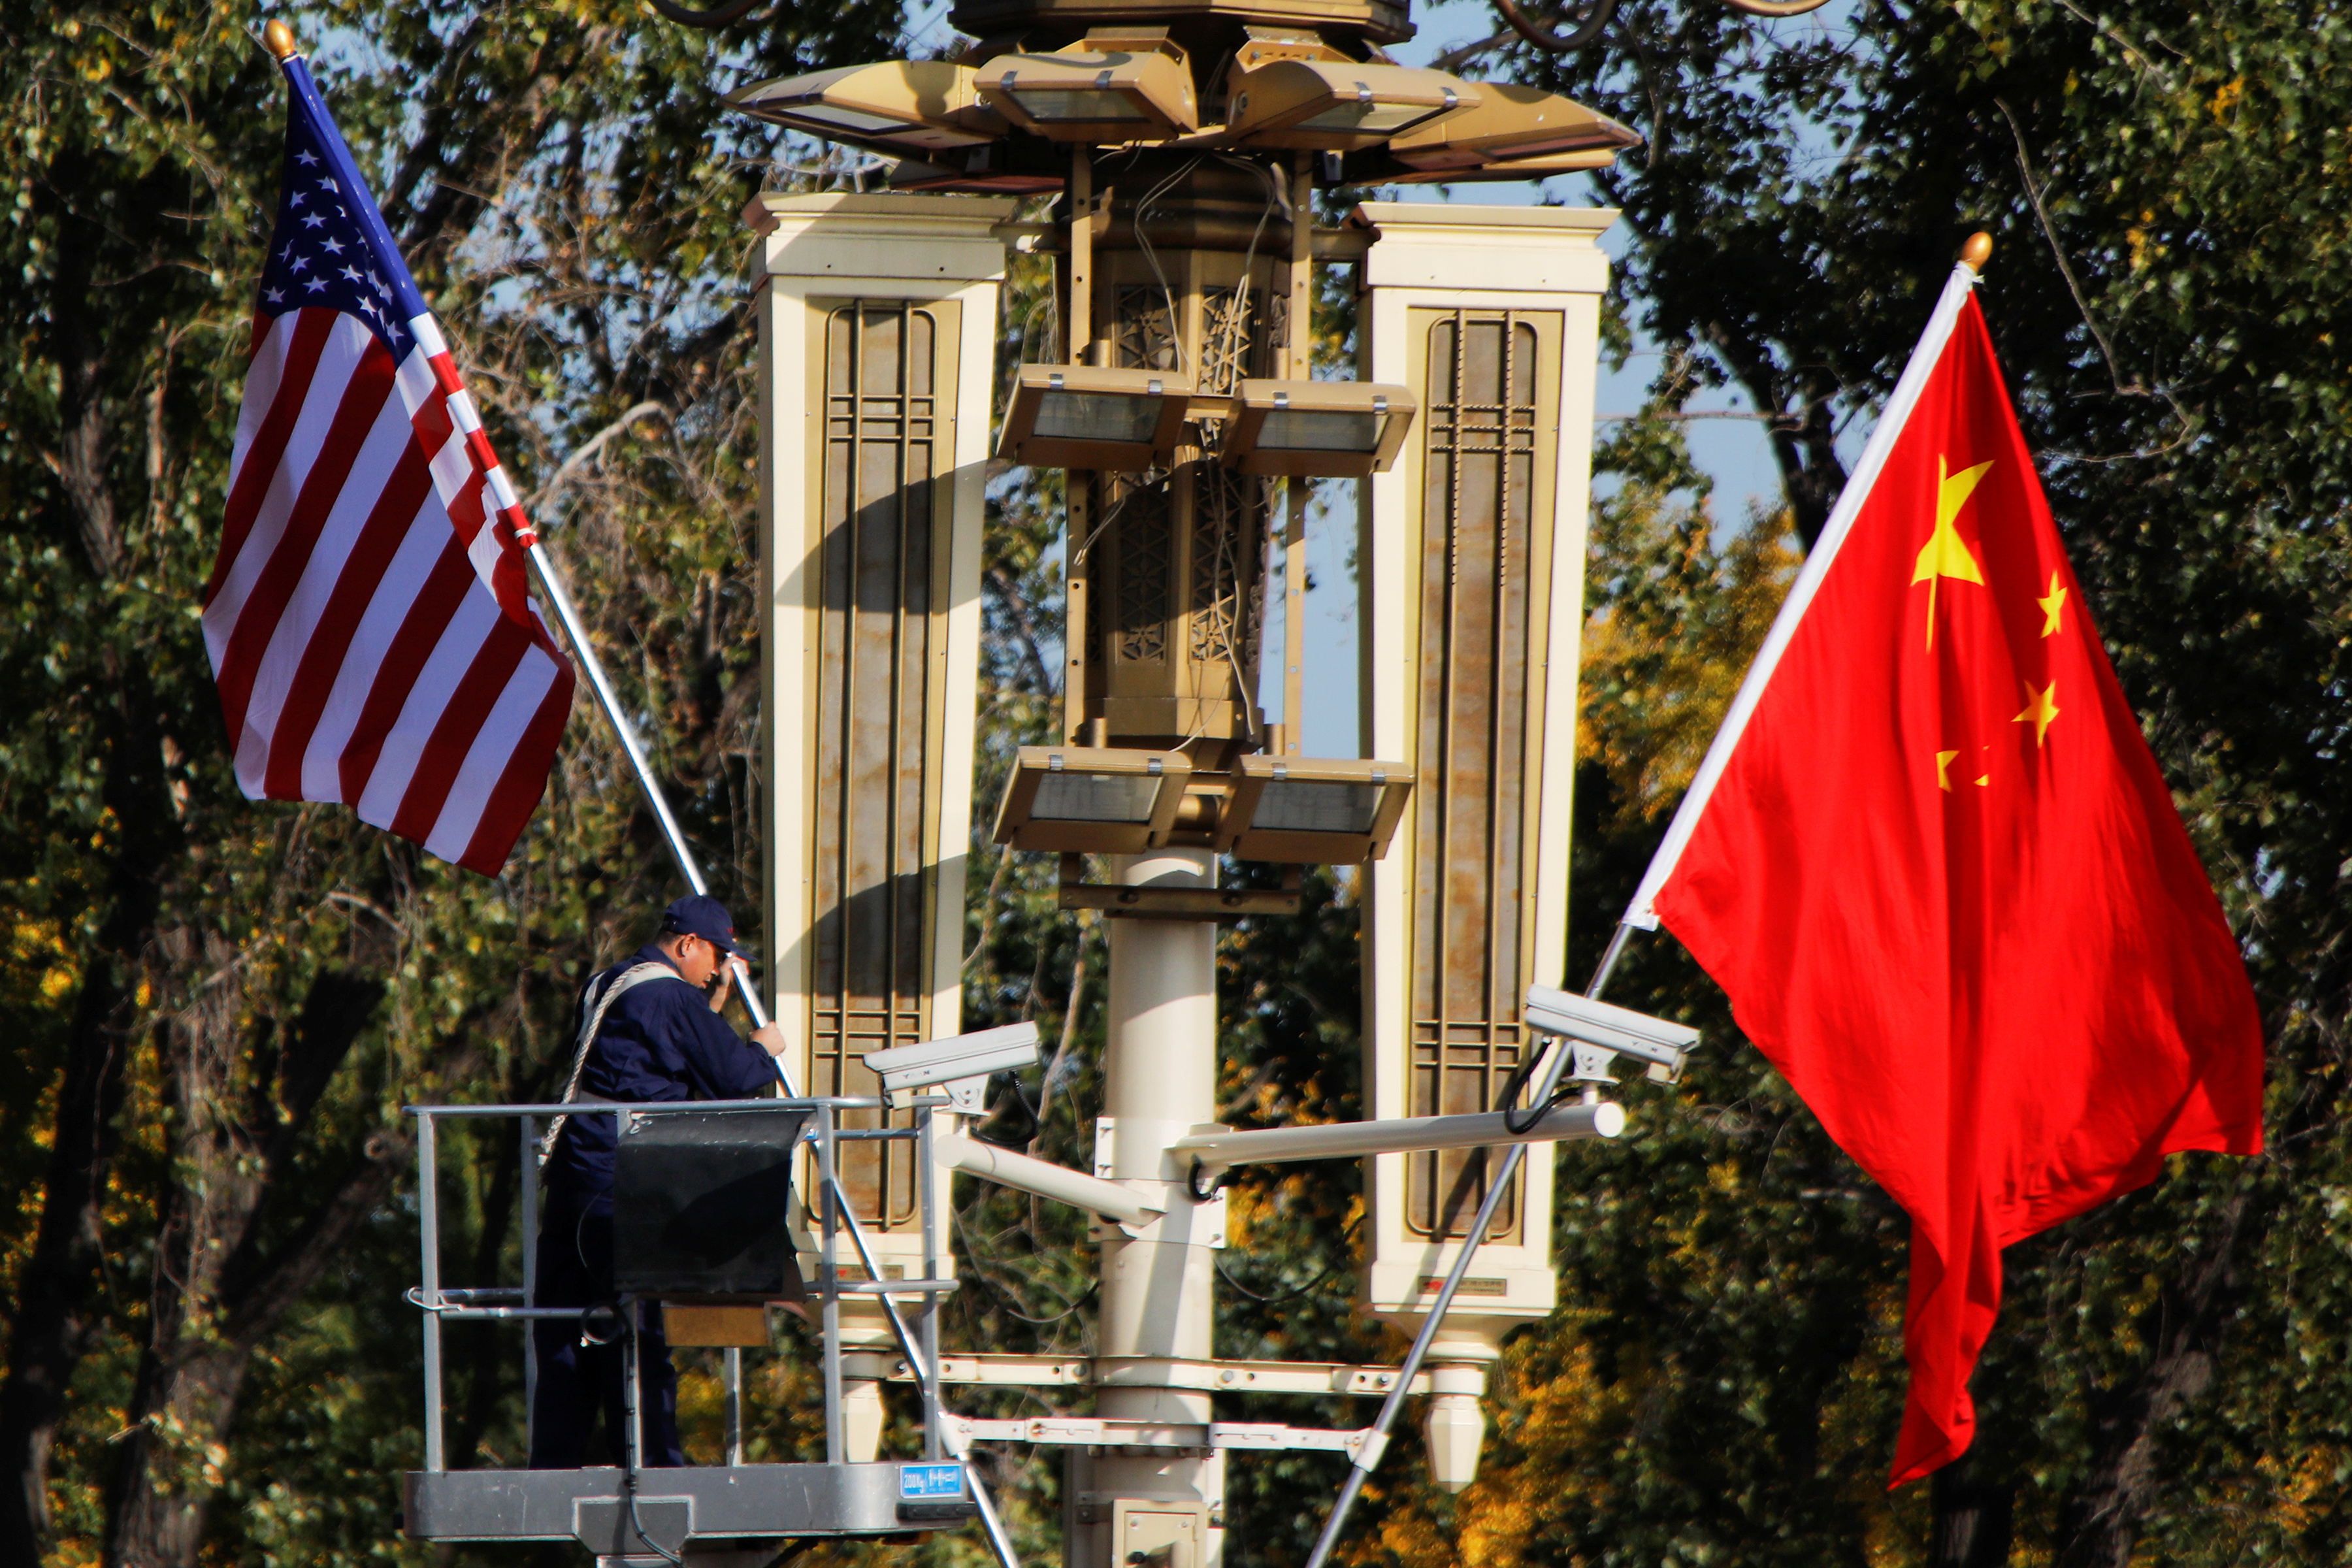 FILE PHOTO - A worker places U.S. and China flags near the Forbidden City ahead of a visit by U.S. President Donald Trump to Beijing, in Beijing, China November 8, 2017. REUTERS/Damir Sagolj